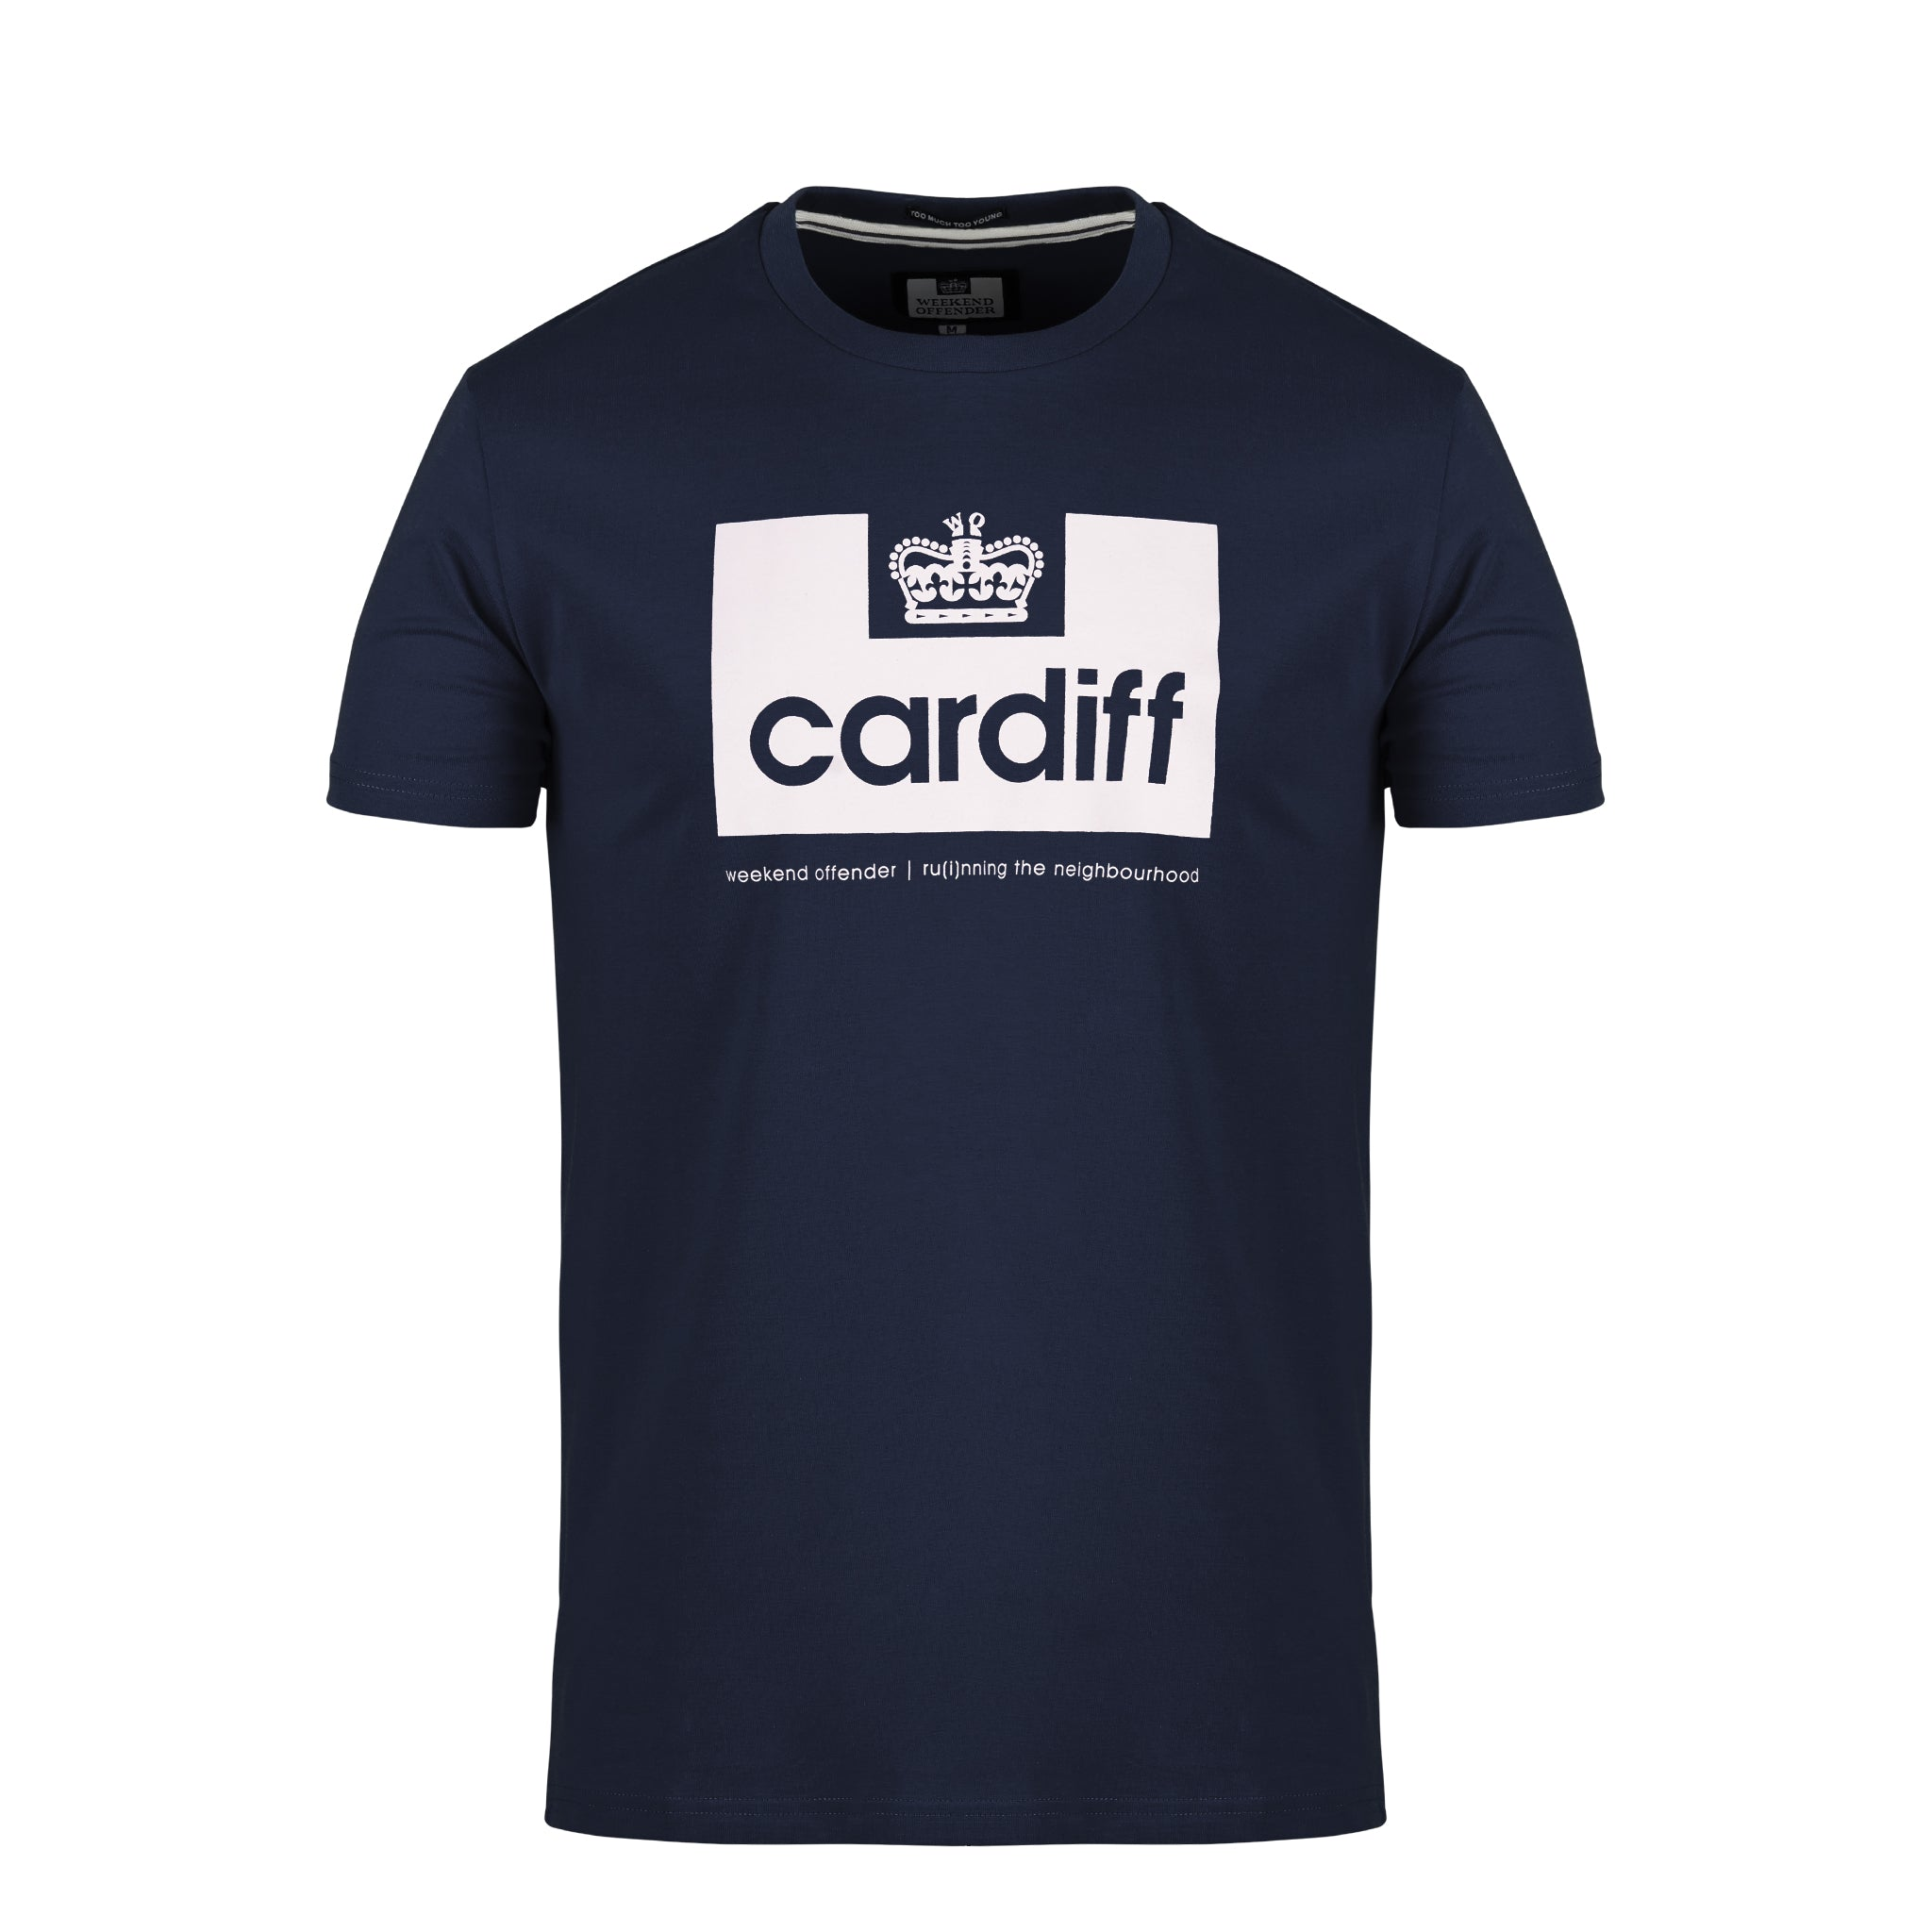 City Series 2 Cardiff Navy